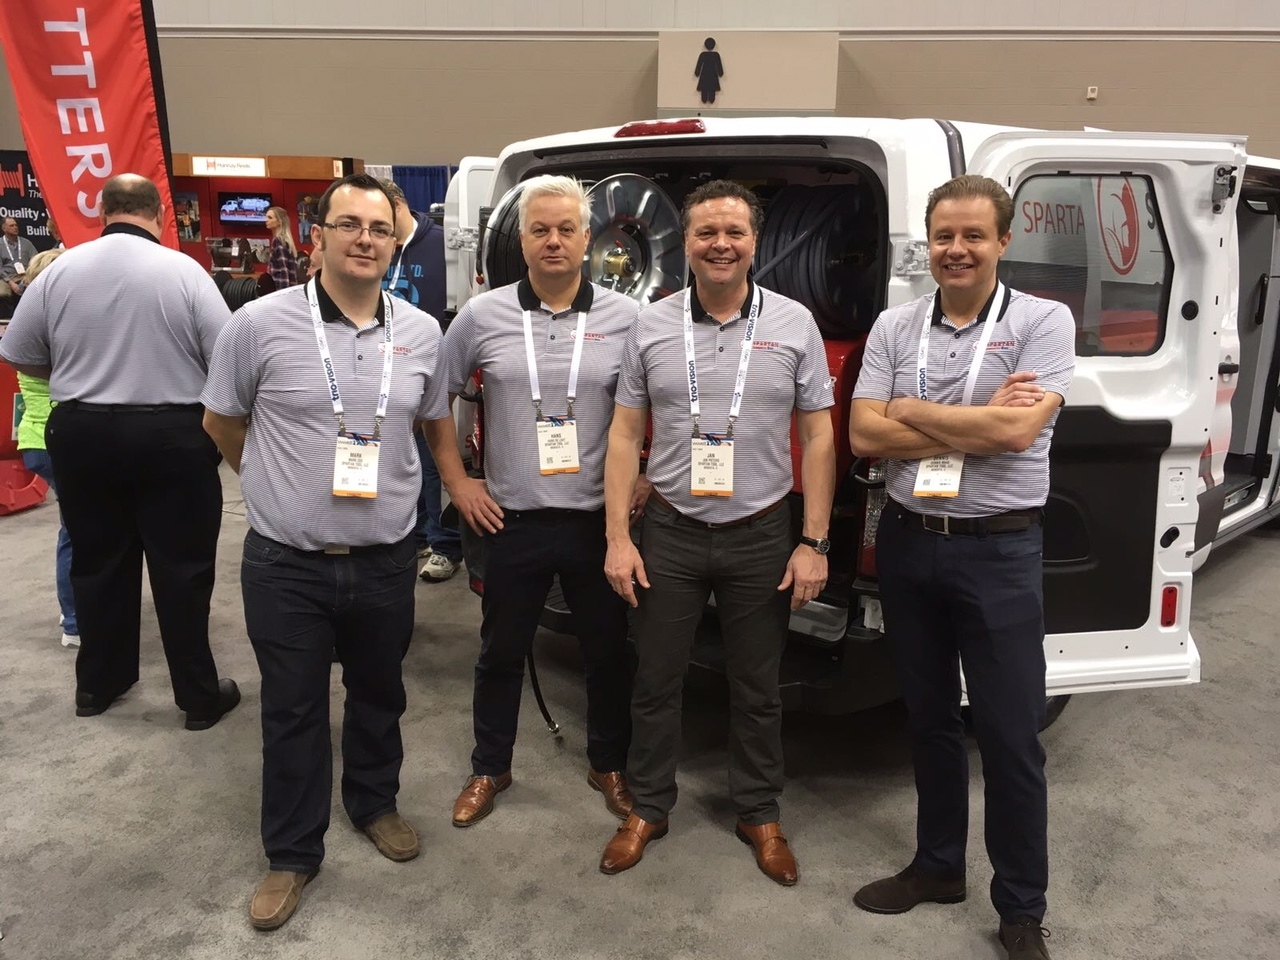 Rioned team at the WWETT show